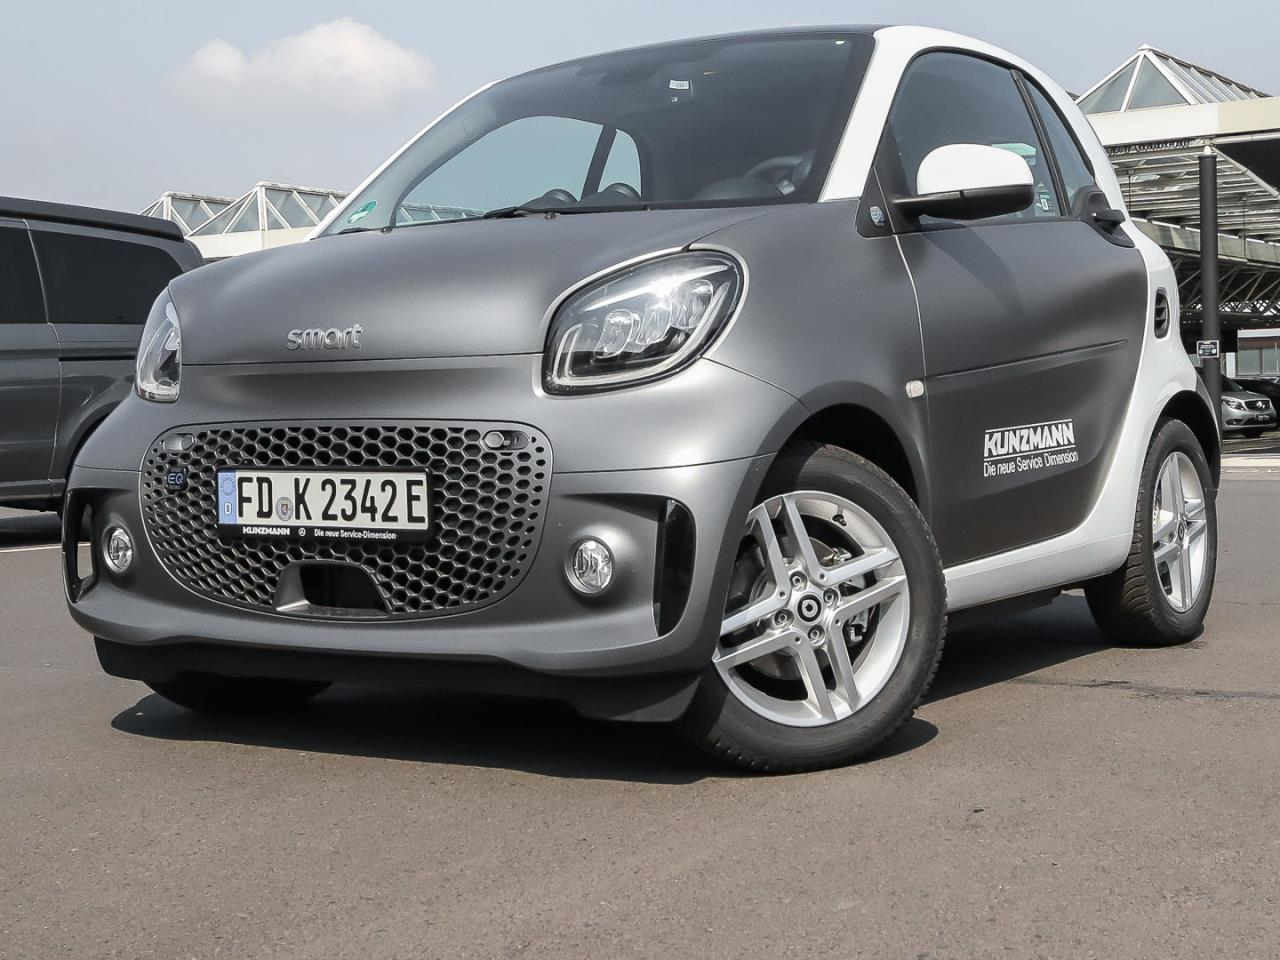 SMART smart EQ fortwo Exclusive LED Kamera Panorama